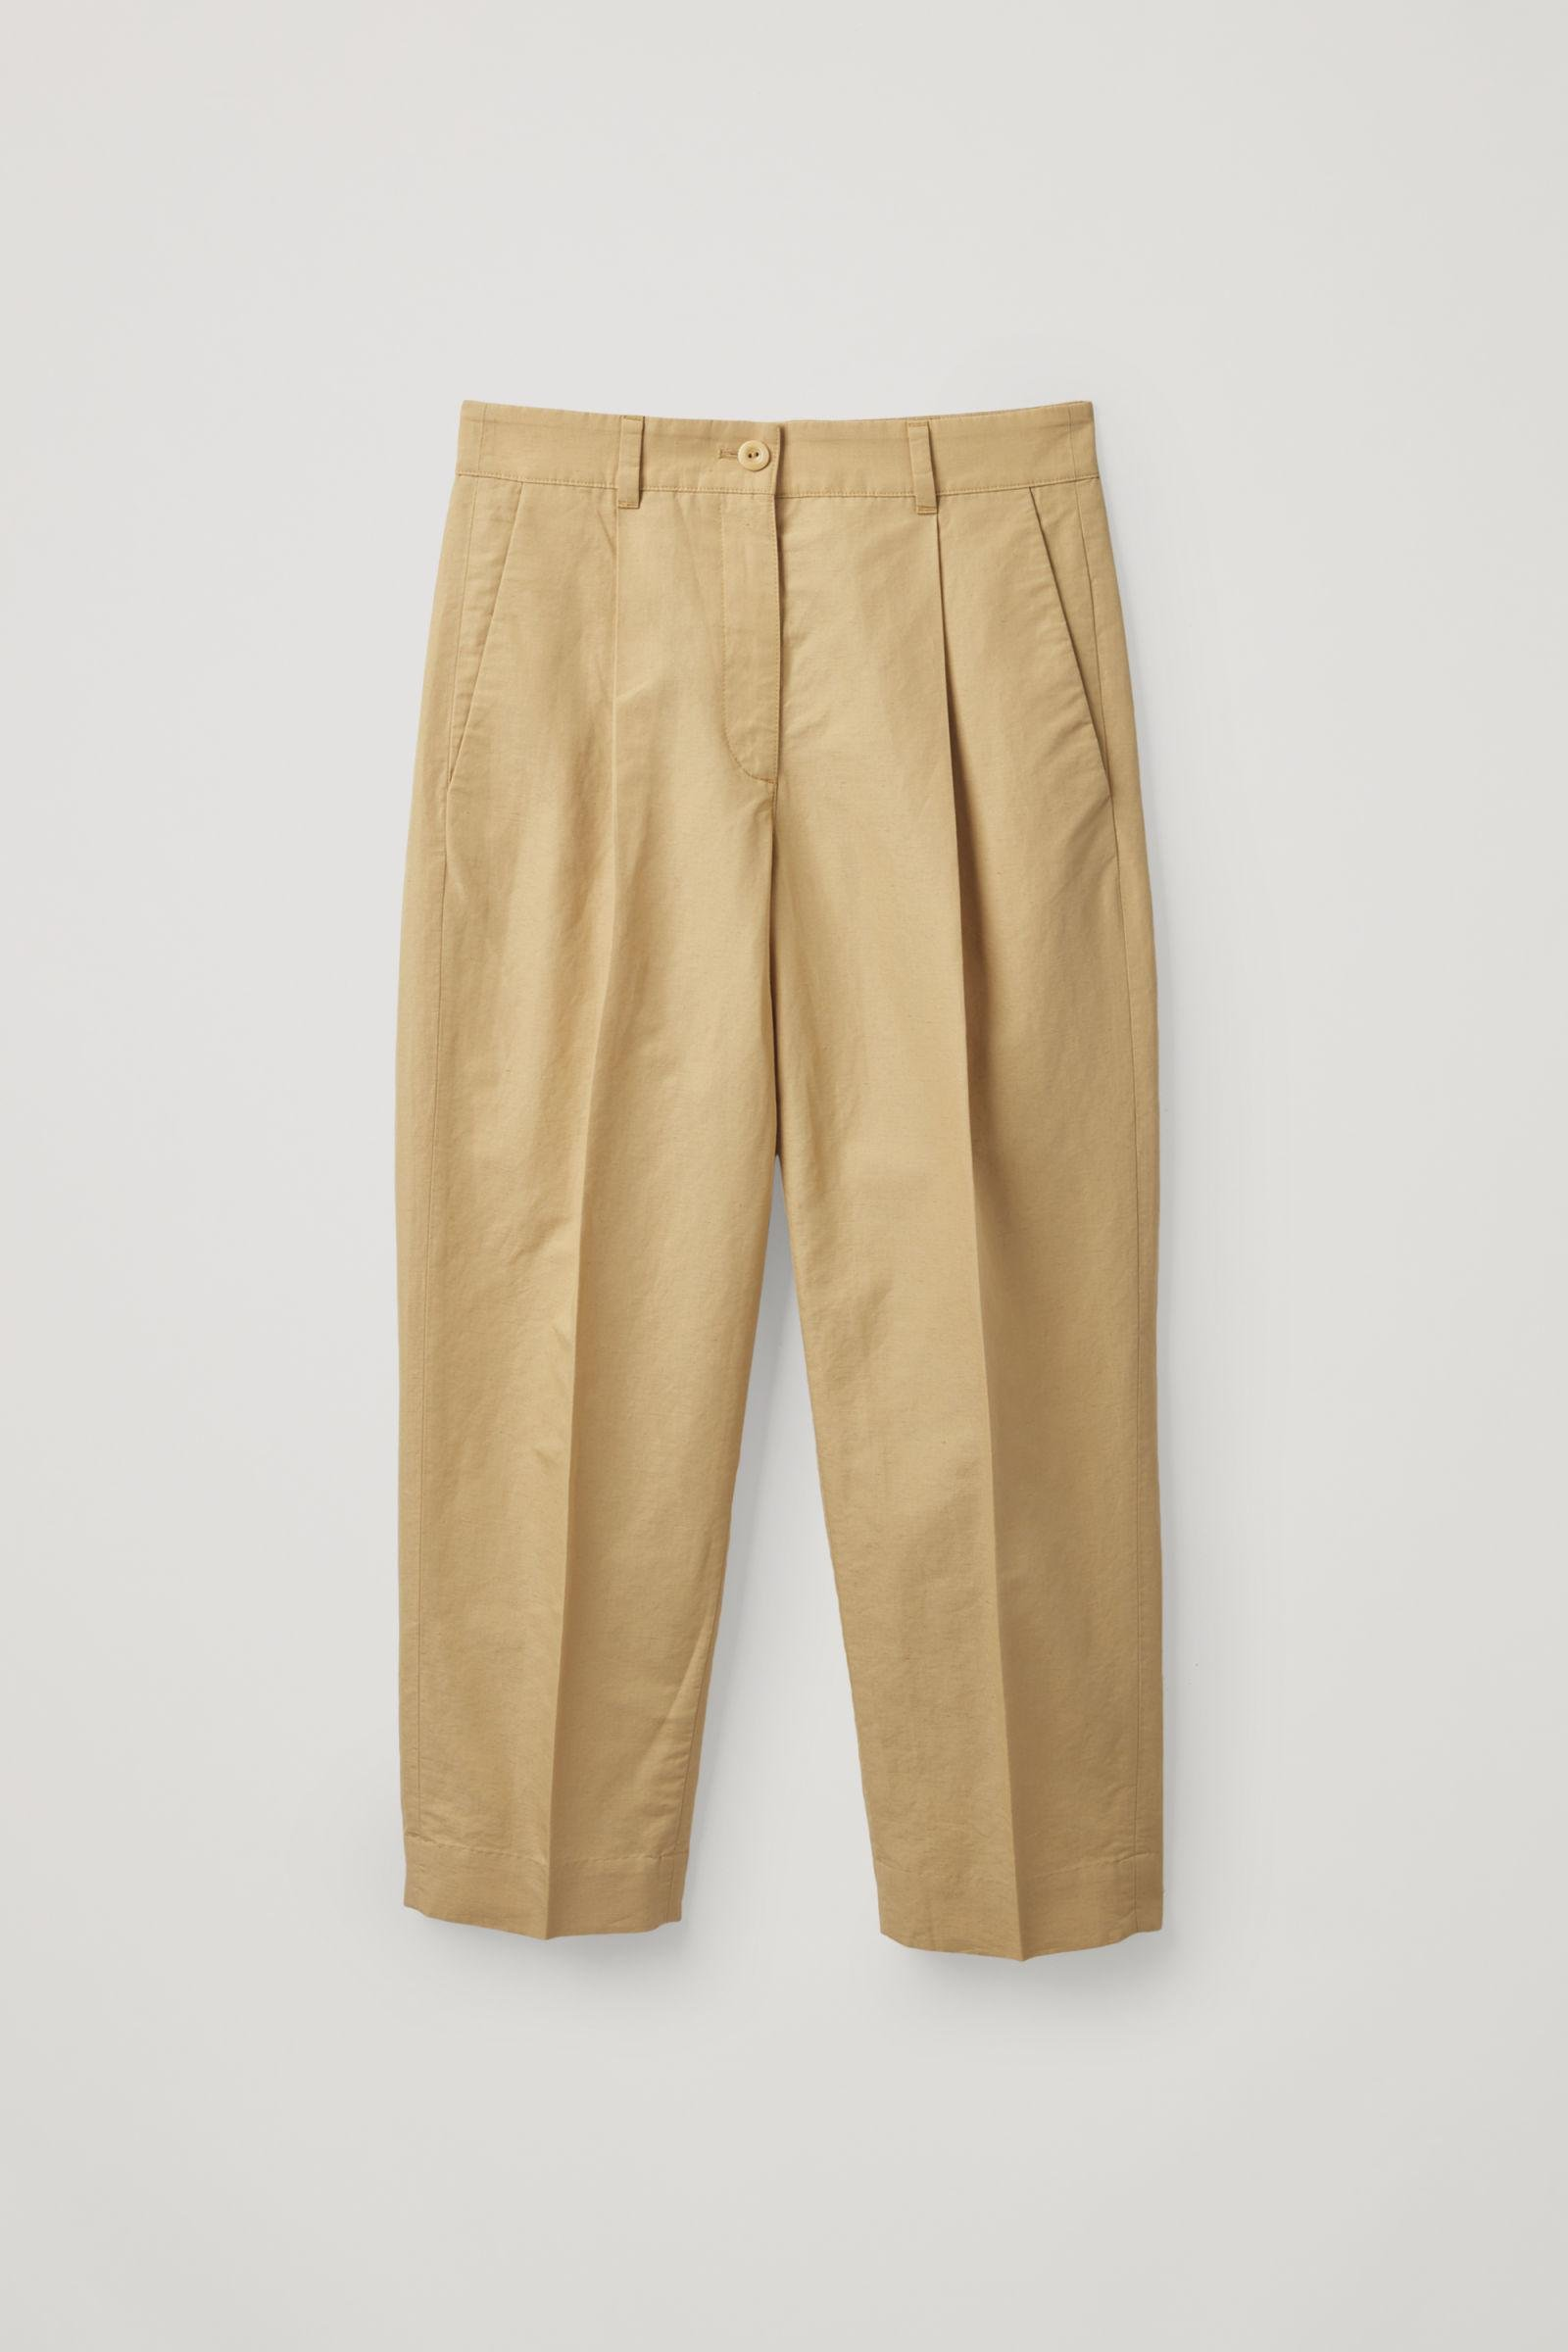 COTTON-LINEN PANTS WITH PRESSFOLDS